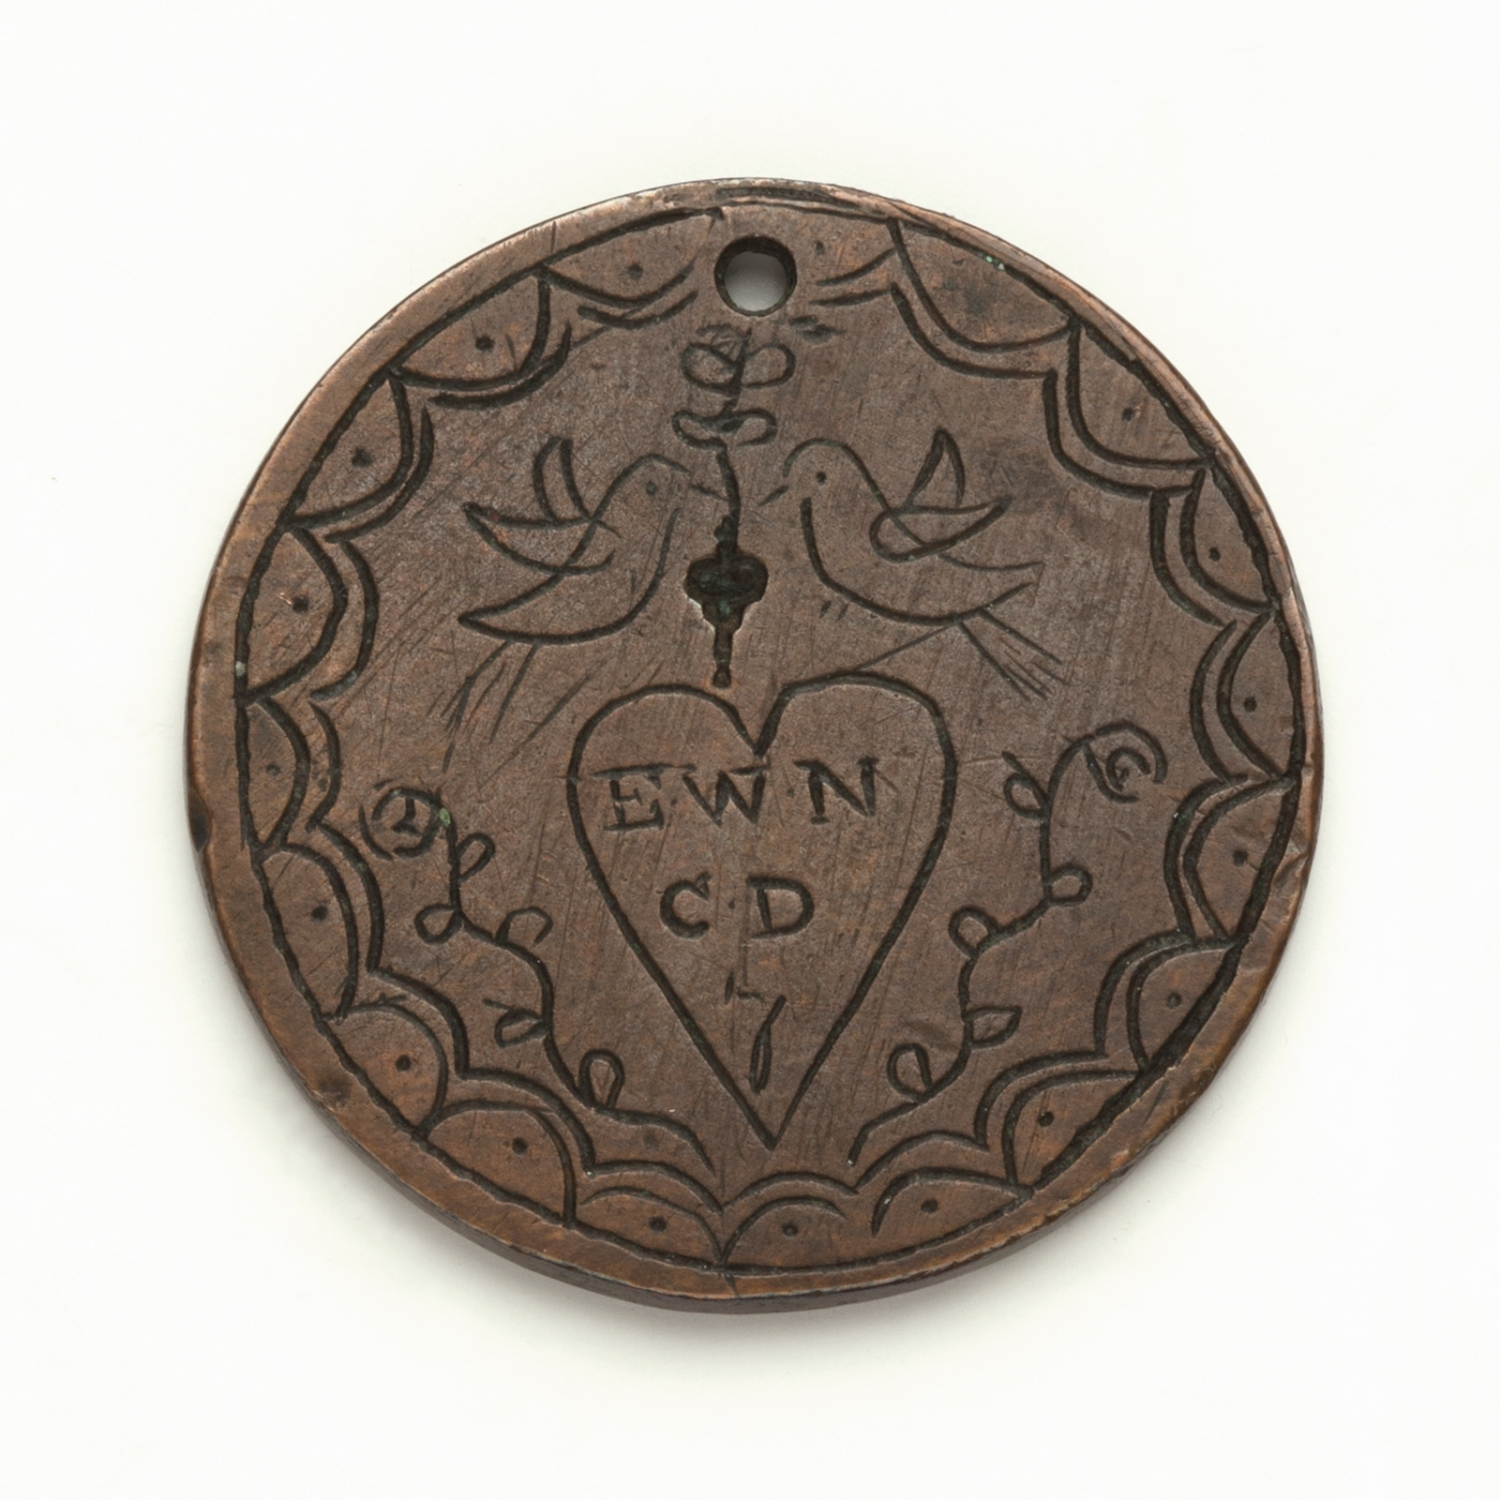 Convict love token, inscribed in 1825